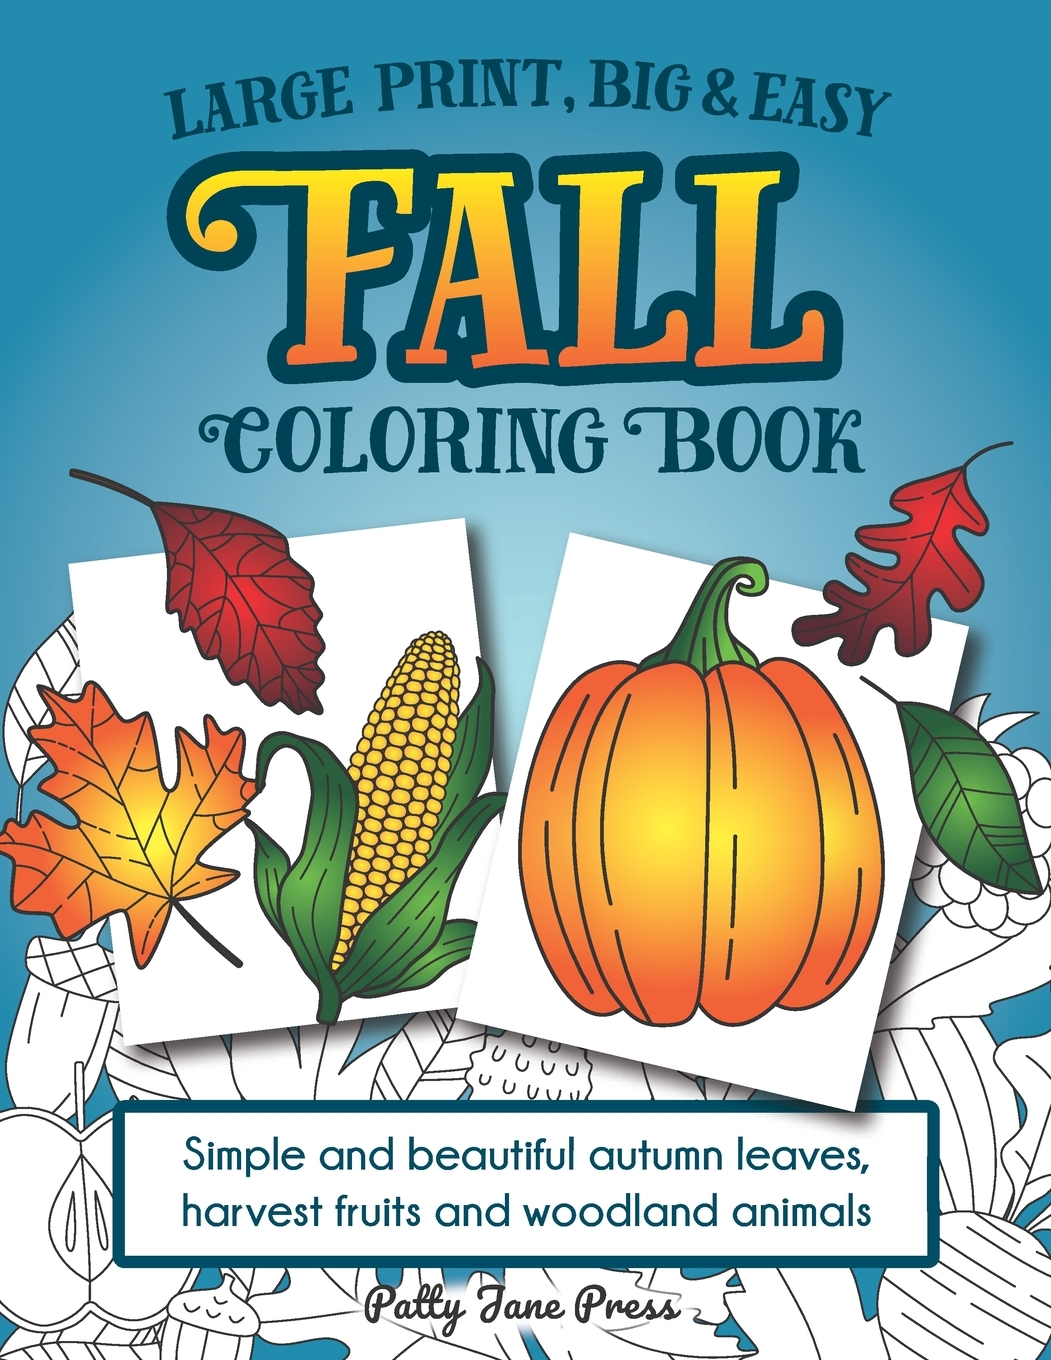 Large Print, Big & Easy Fall Coloring Book : Simple Autumn Pages Perfect  For Toddlers, Adults Or Seniors For Fun And Relaxing Stress Relief  (Paperback) - Walmart.com - Walmart.com